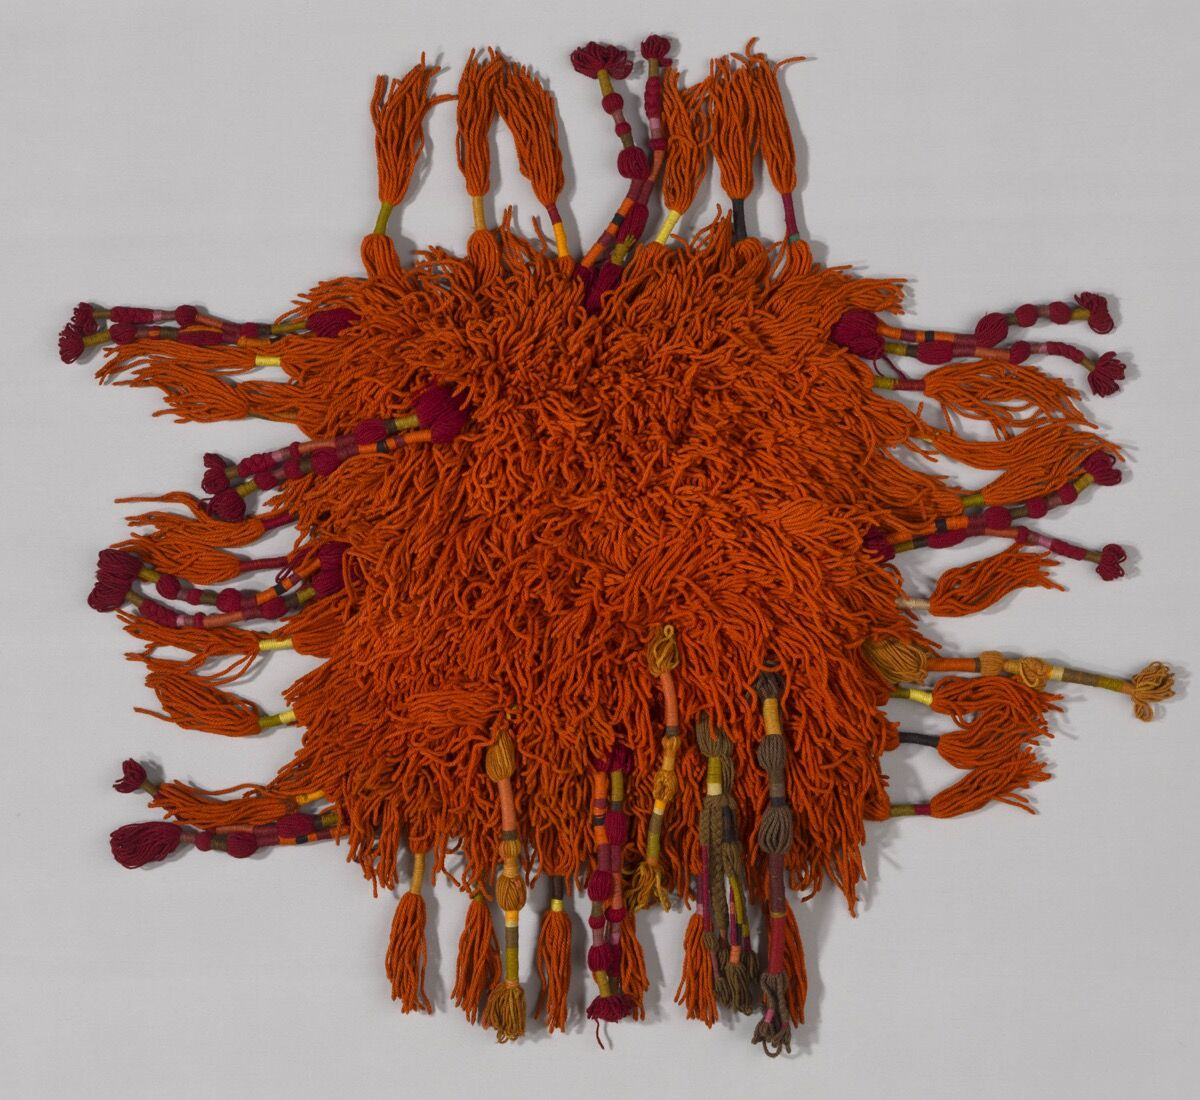 Sheila Hicks, Produced by V'SOSKE, Rug, ca. 1965. Courtesy of the Art Institute of Chicago.